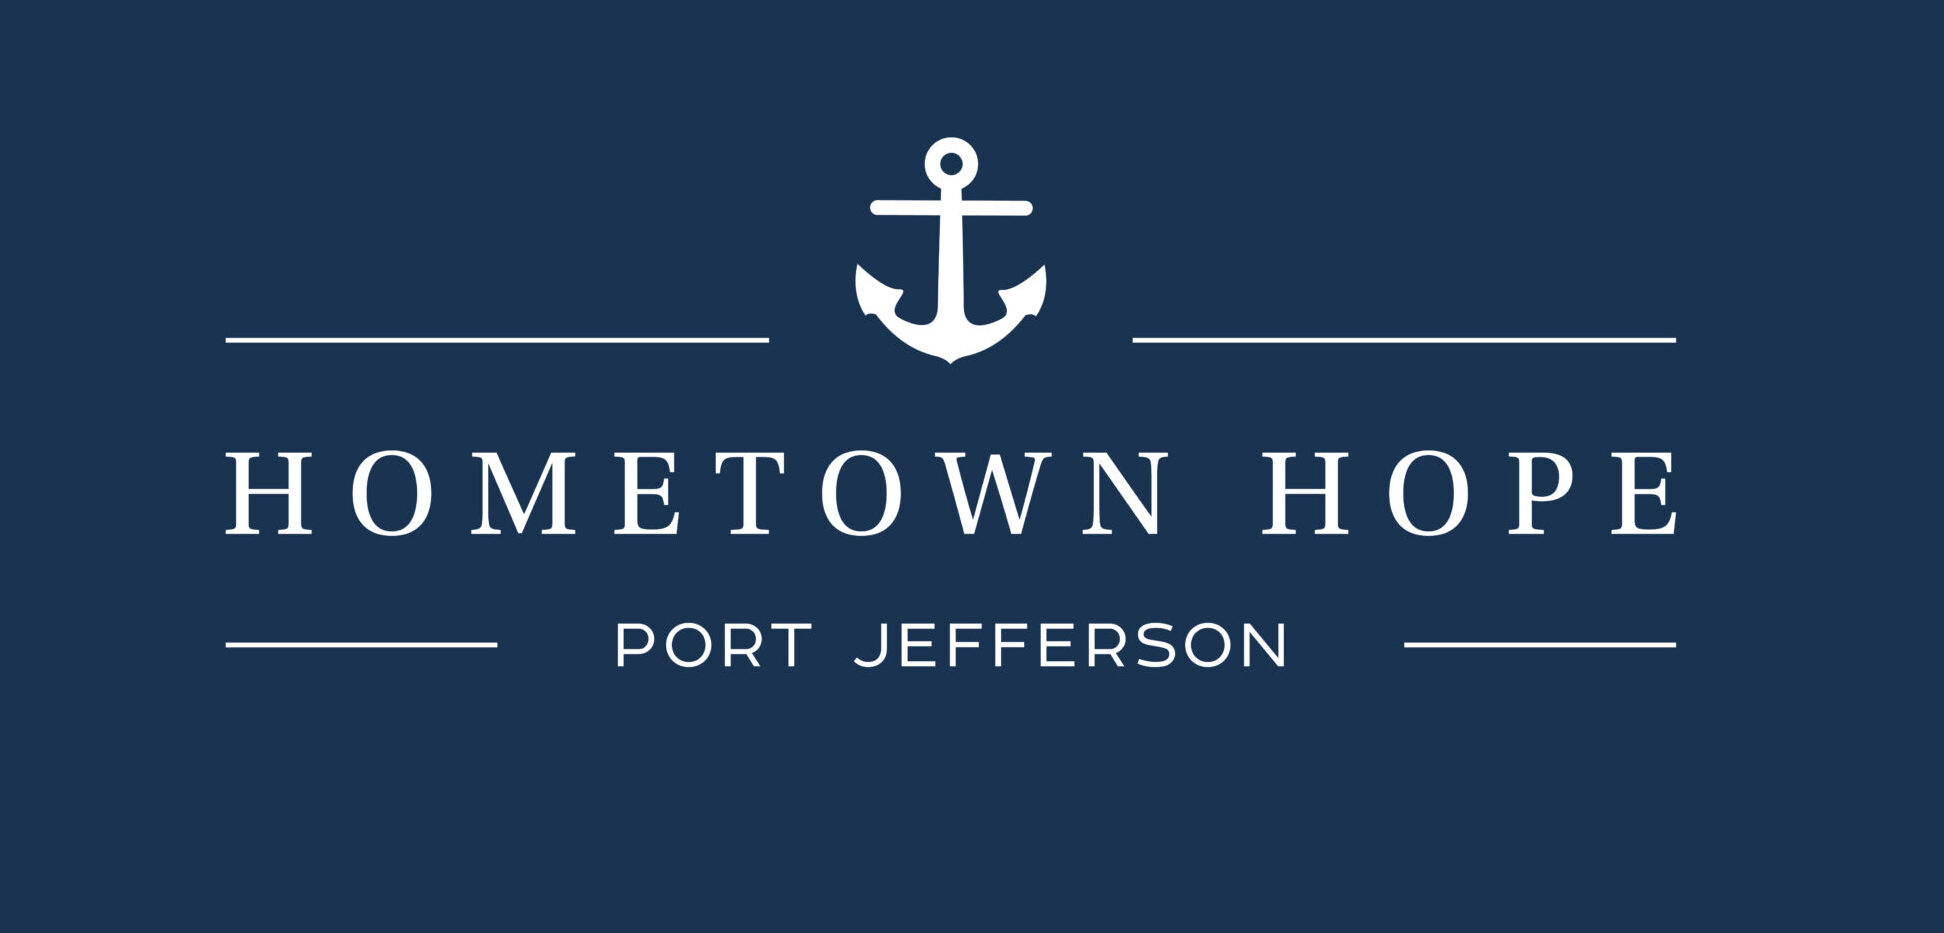 Hometown Hope Port Jefferson